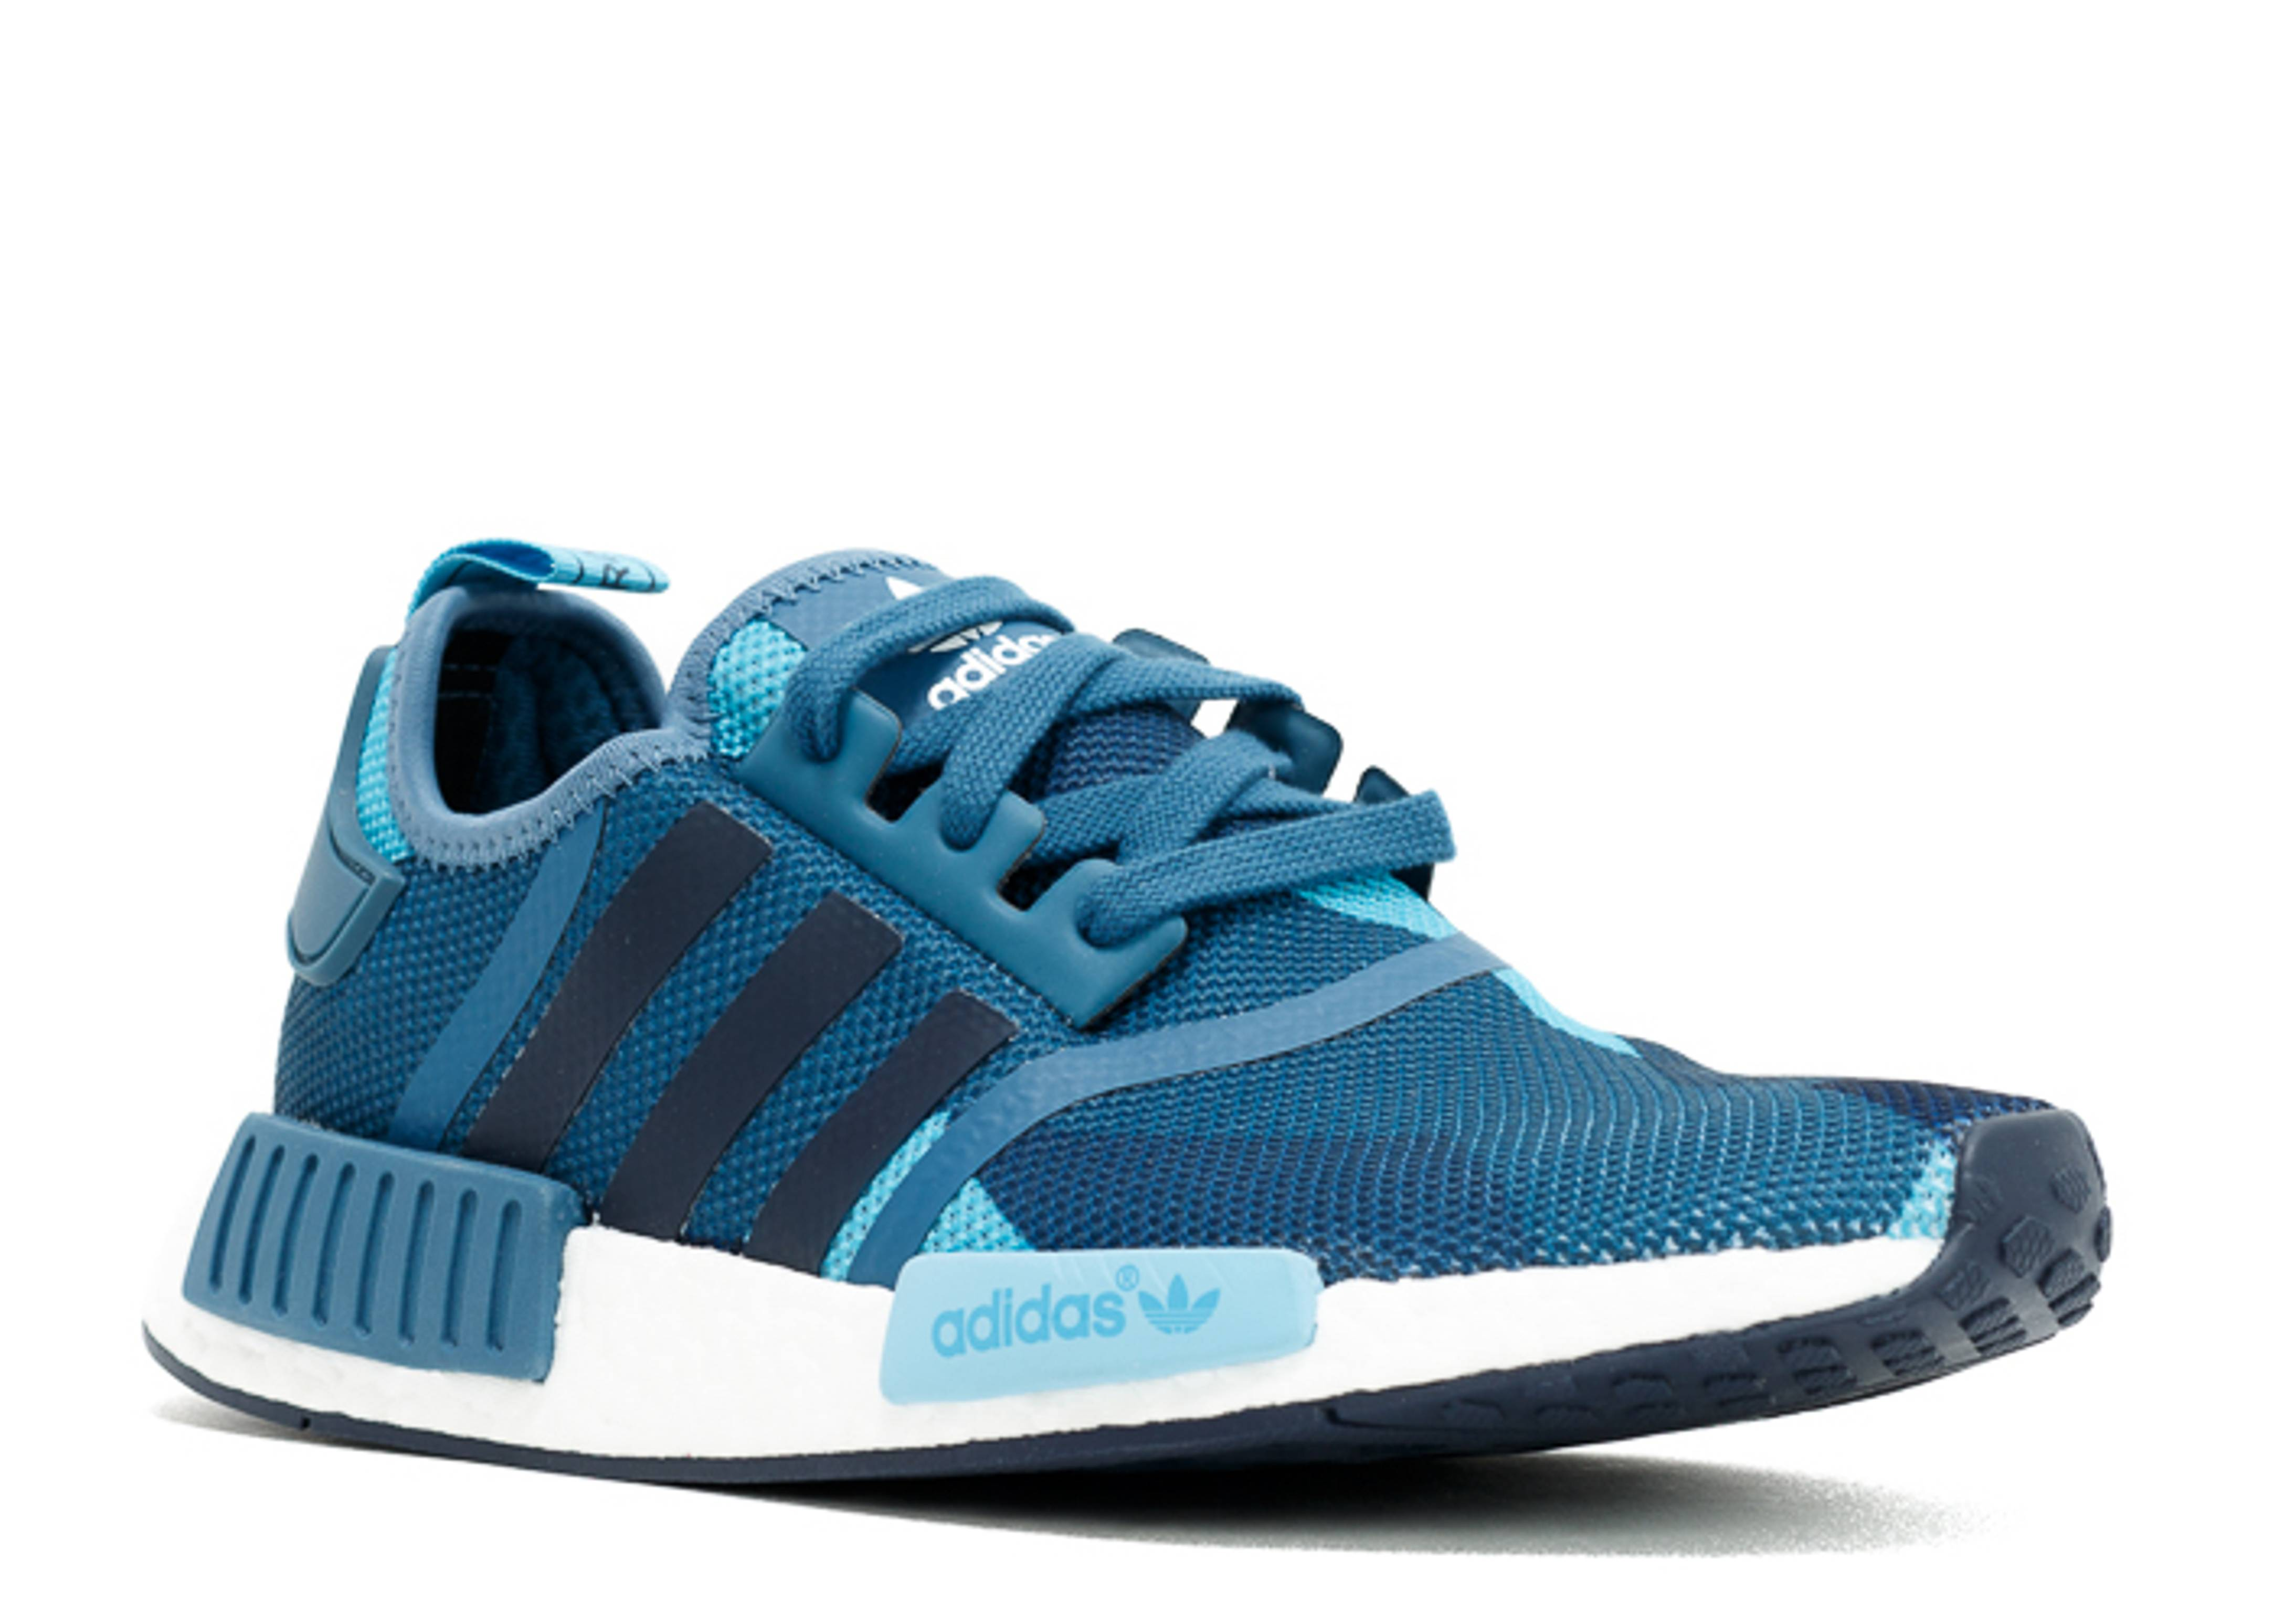 81b91a743ee9 Buy adidas nmd r1 Blue   OFF67% Discounted